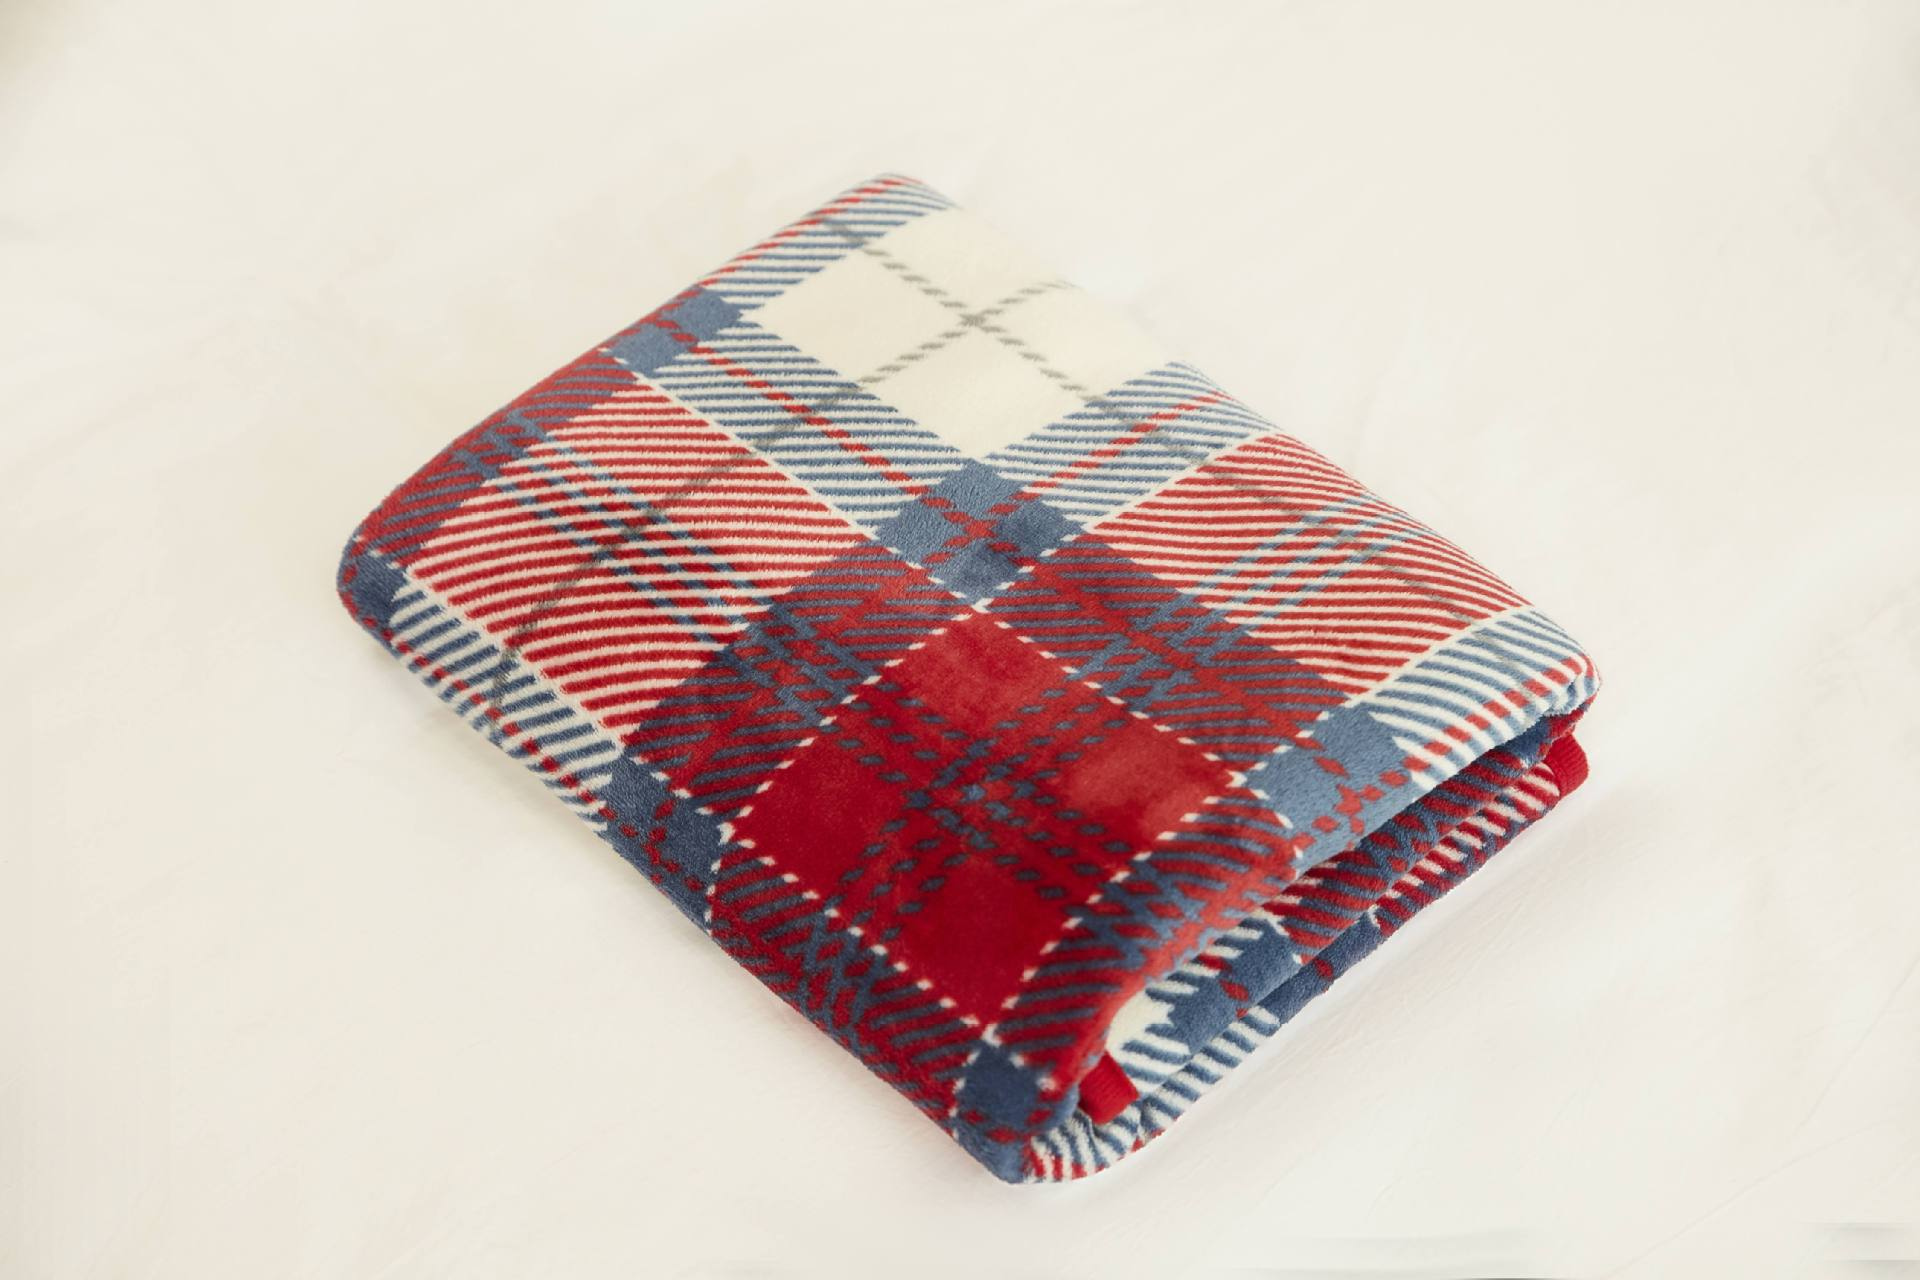 Portable Tartan Plaid Pattern Velvet Blankets with Buttons for Peculiar Convenient Cover